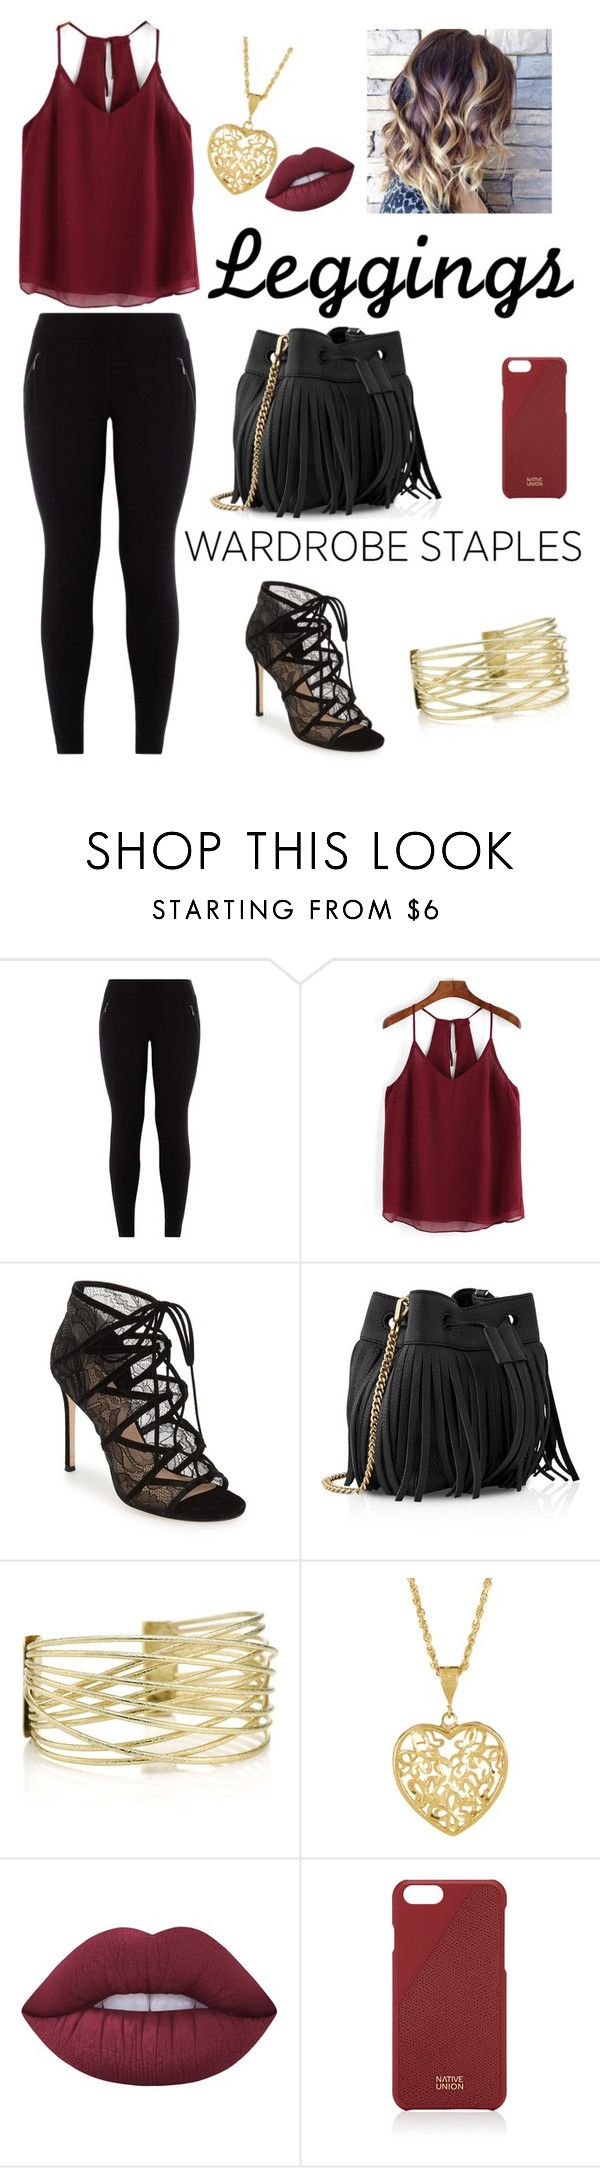 """take me on"" by anushkaeliaza ❤ liked on Polyvore featuring New Look, Pour La Victoire, Whistles, Lime Crime, Native Union, Leggings and WardrobeStaples"